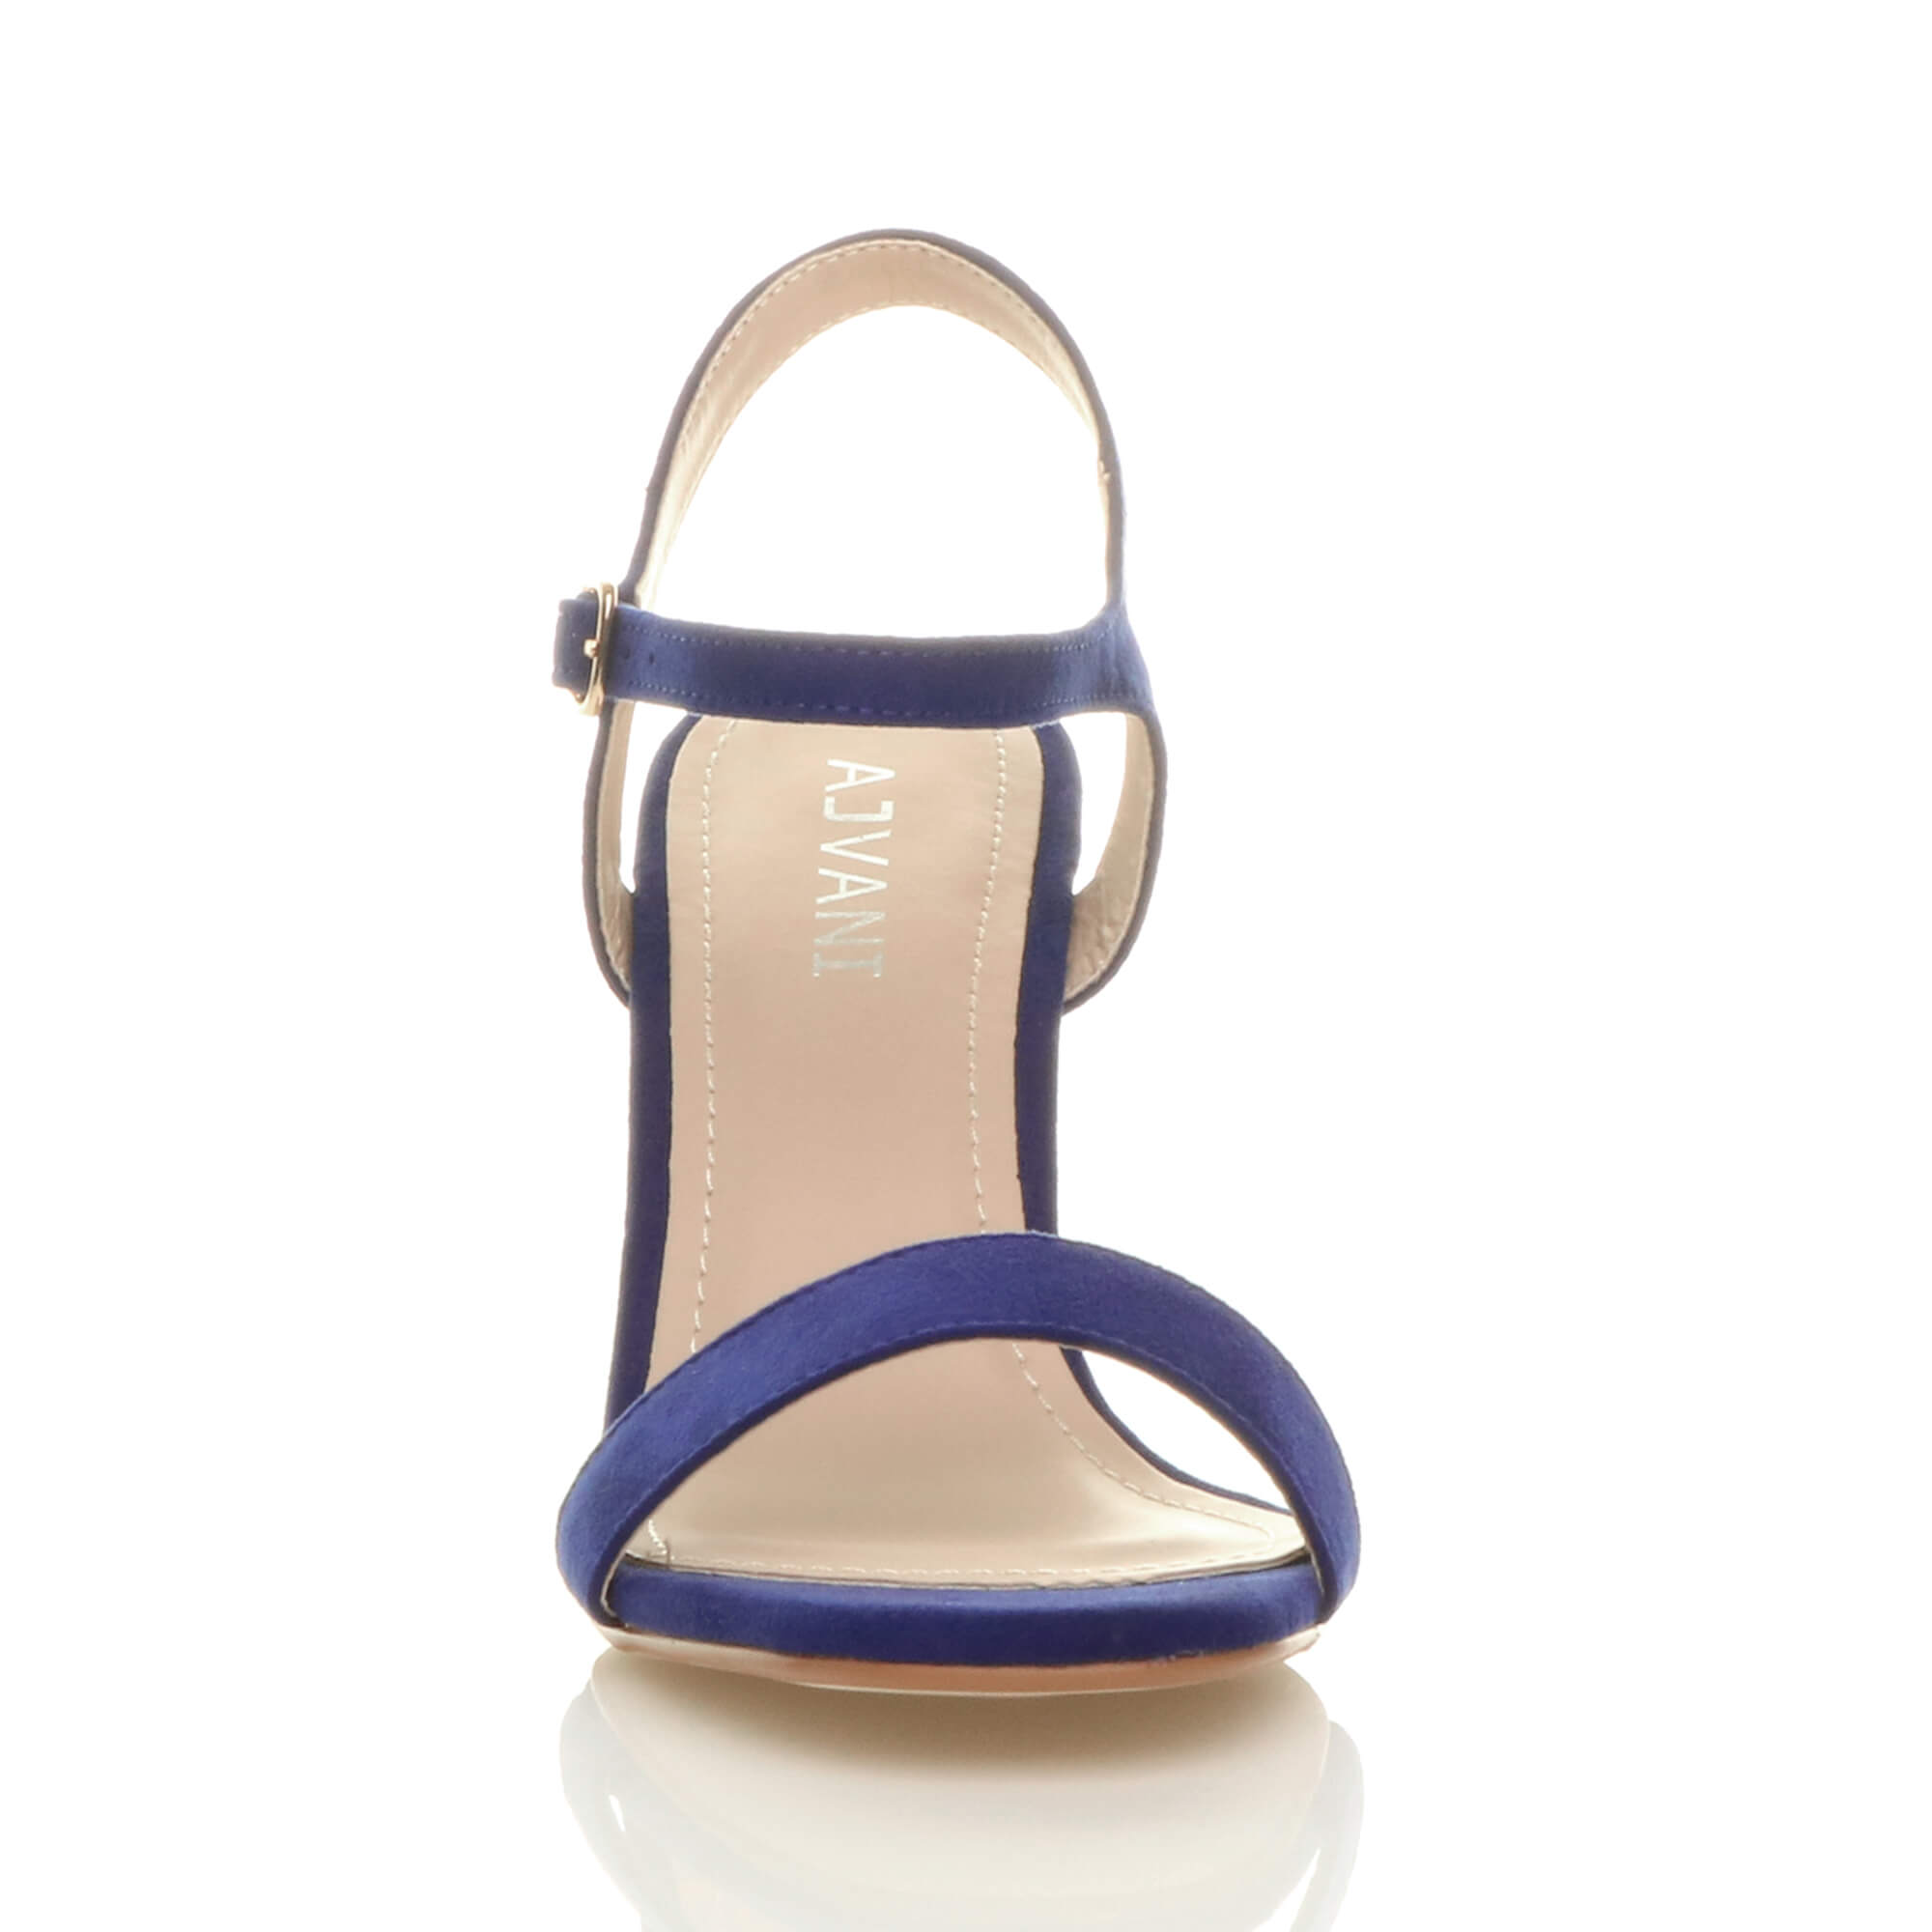 WOMENS-LADIES-HIGH-HEEL-BUCKLE-STRAPPY-BASIC-BARELY-THERE-SANDALS-SHOES-SIZE thumbnail 20